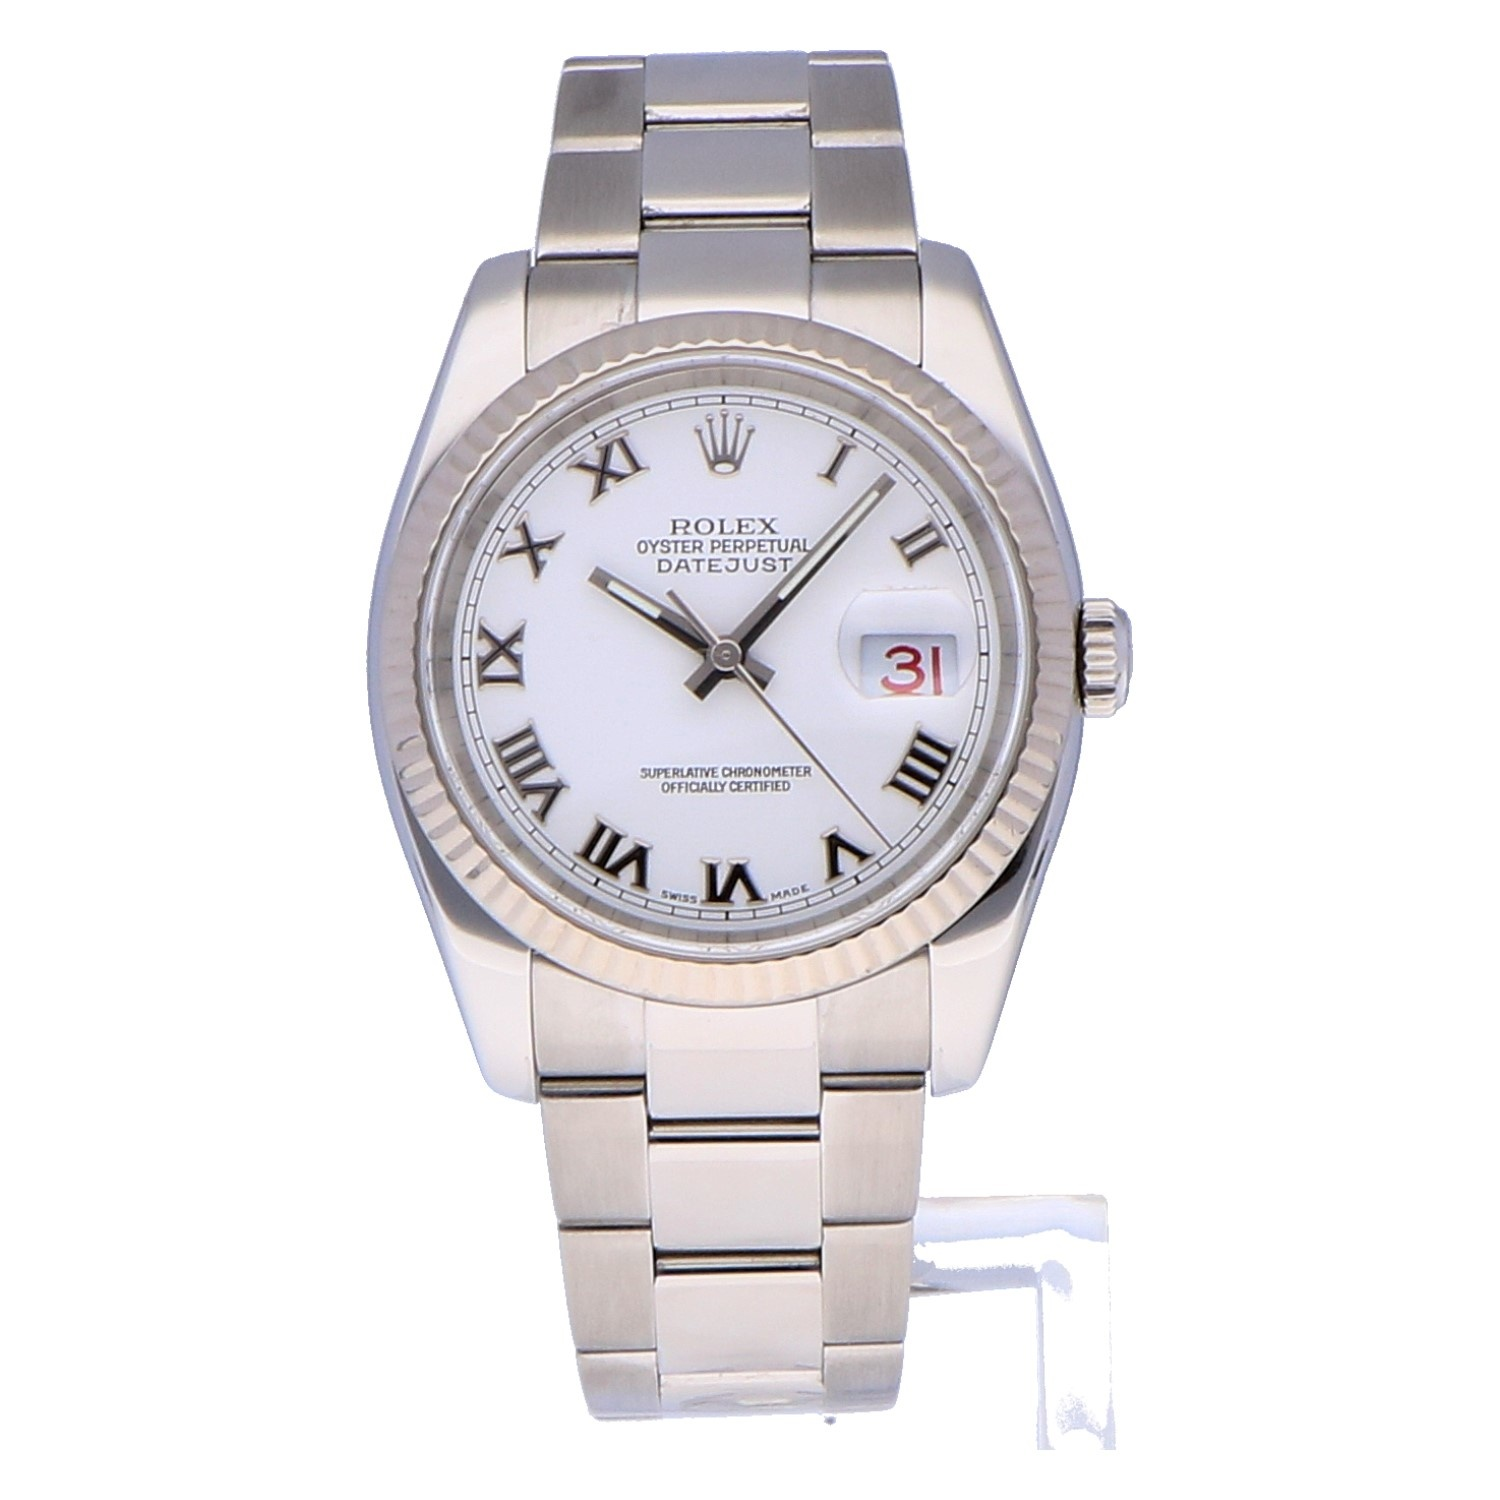 Rolex Oyster Perpetual Datejust 36 116234